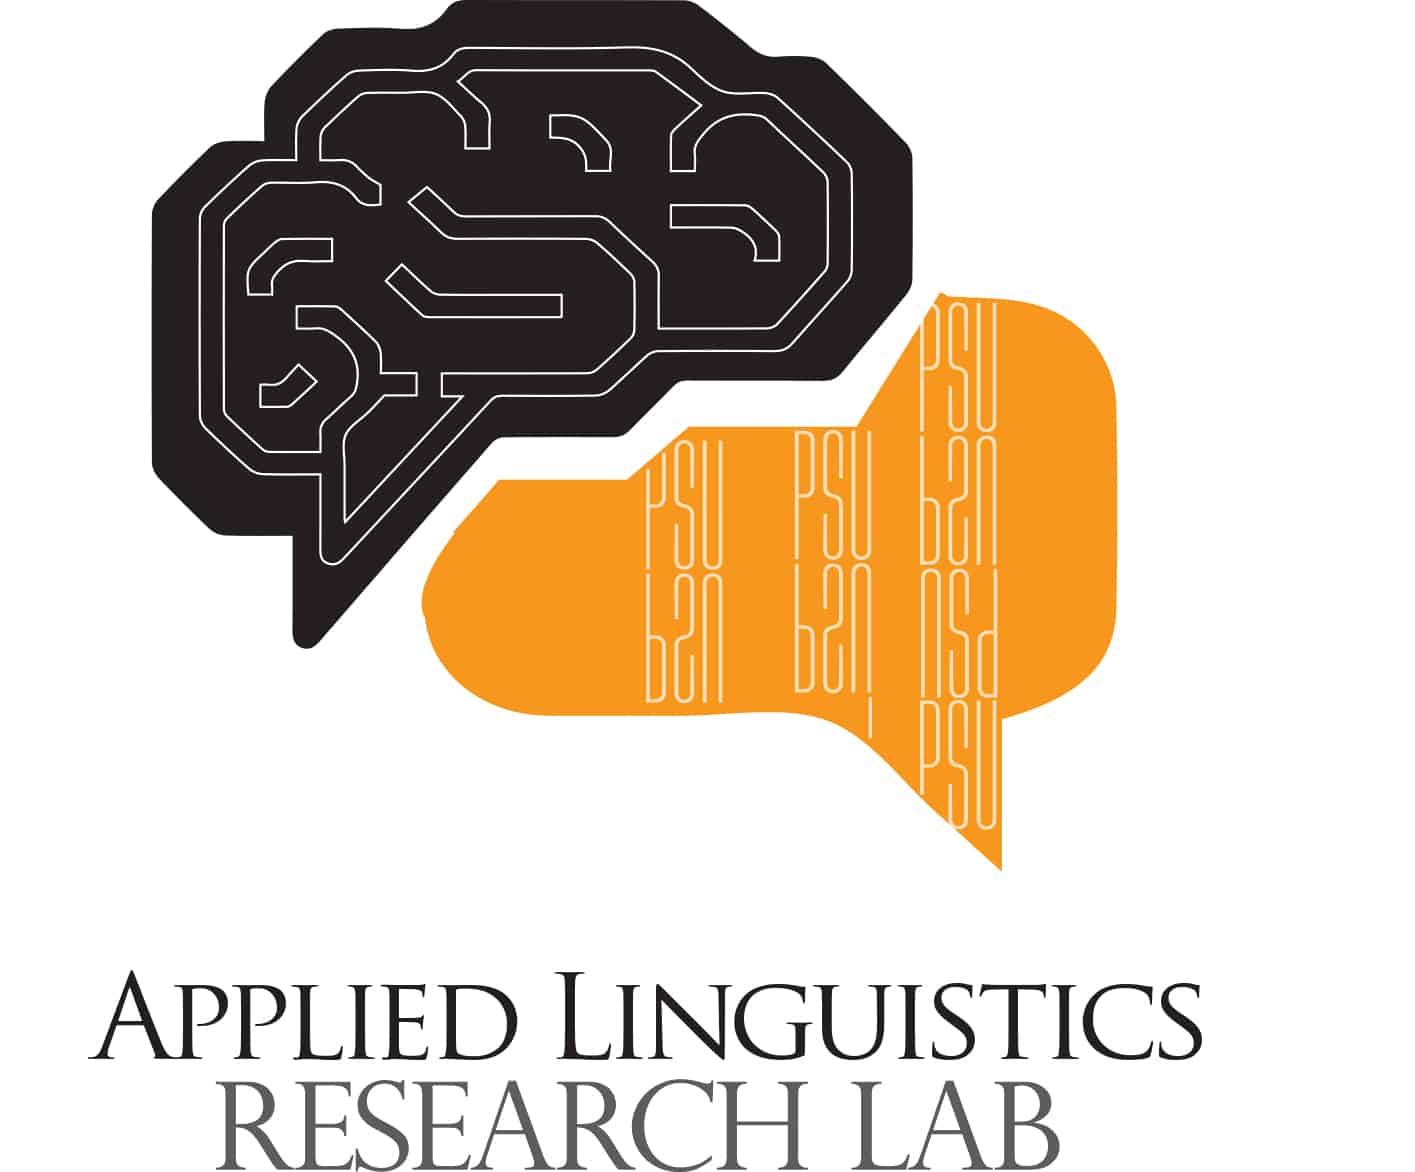 """The Applied Linguistics Research Lab Holds a Seminar on """"Discourse Analysis: The Use of Metadiscourse"""""""